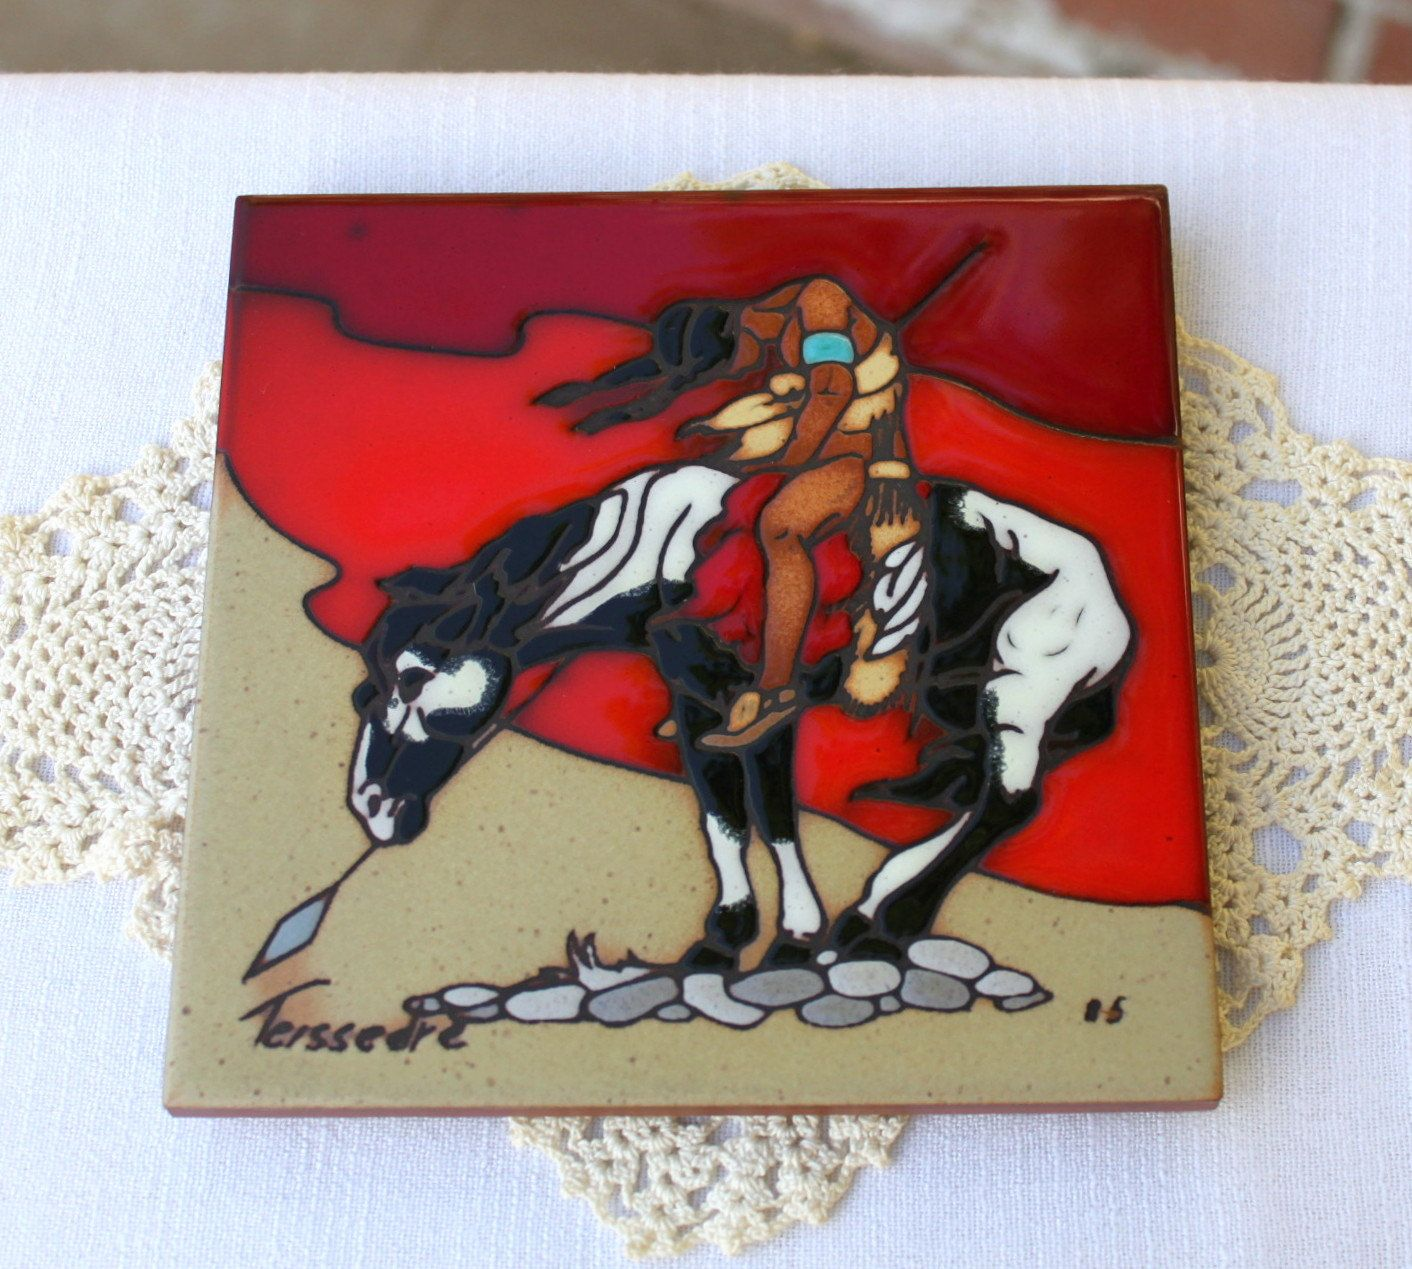 Vintage southwestern rustic decor native american navajo fine end of trail ceramic tile southwest native american horse hand painted tile trivet red wall decor dailygadgetfo Choice Image